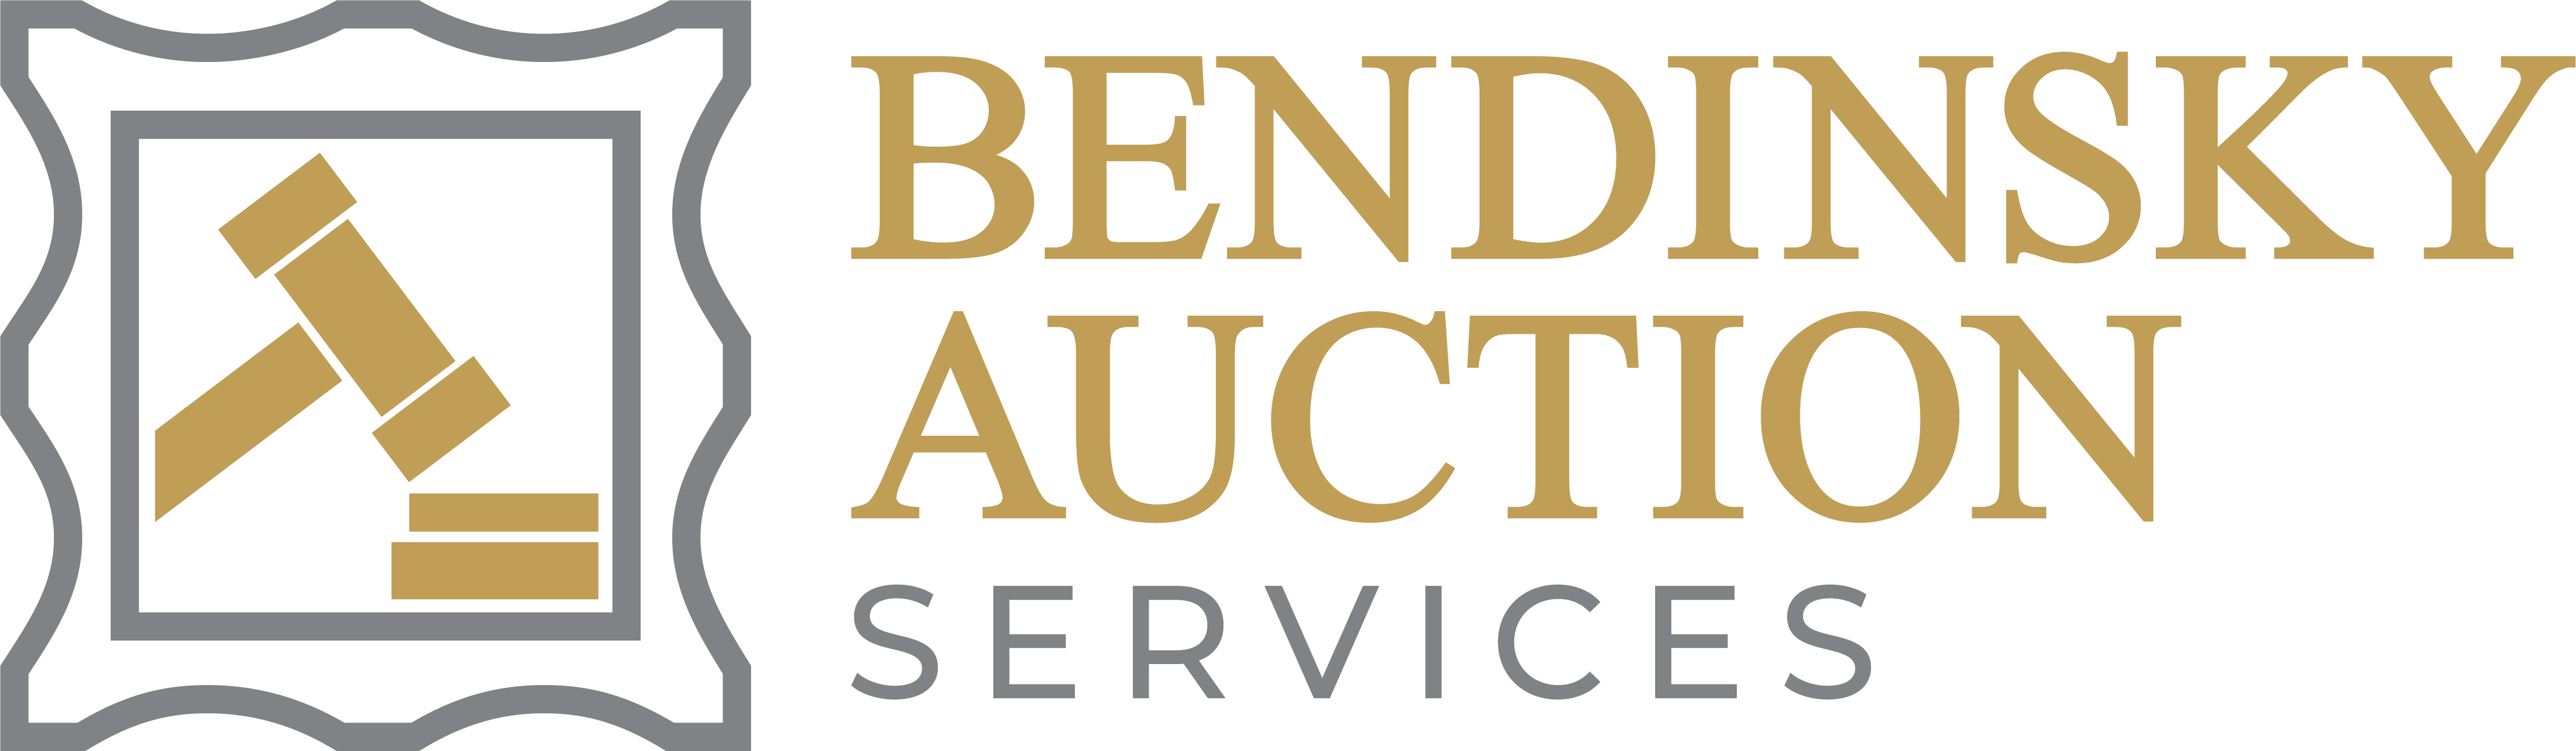 Bendinsky Auction Service